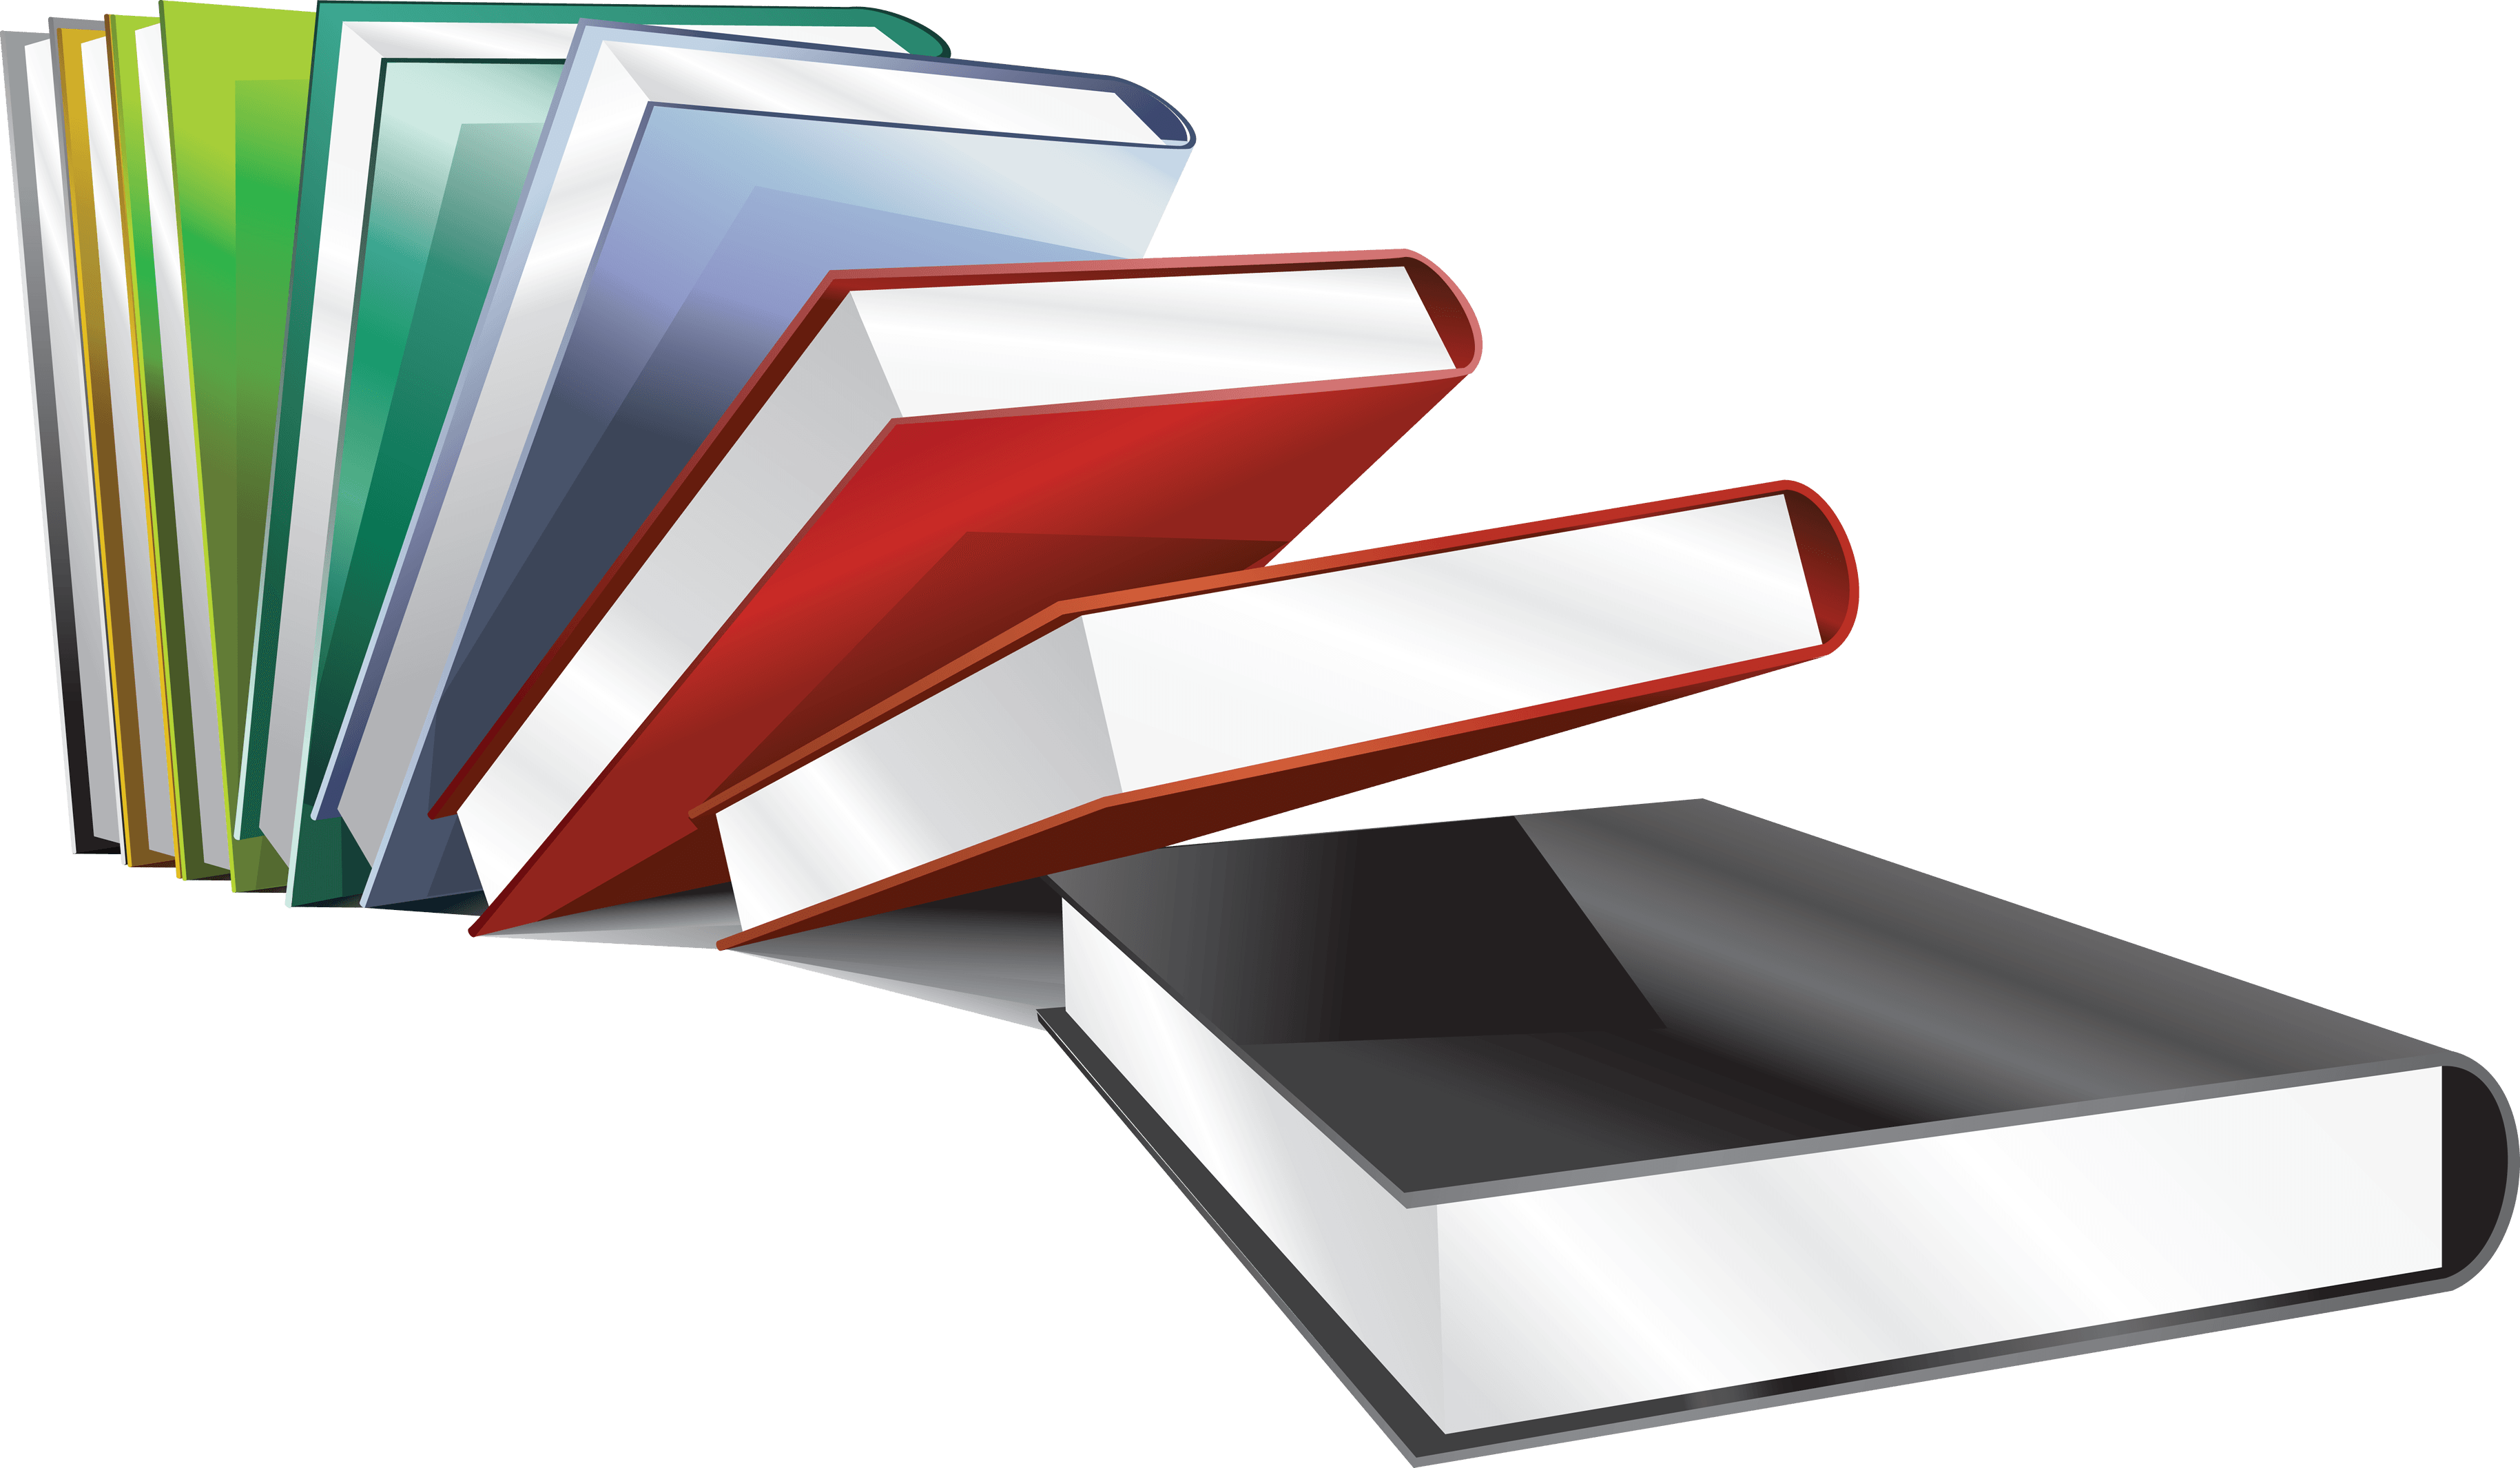 18 Books Png Image With Transparency Background